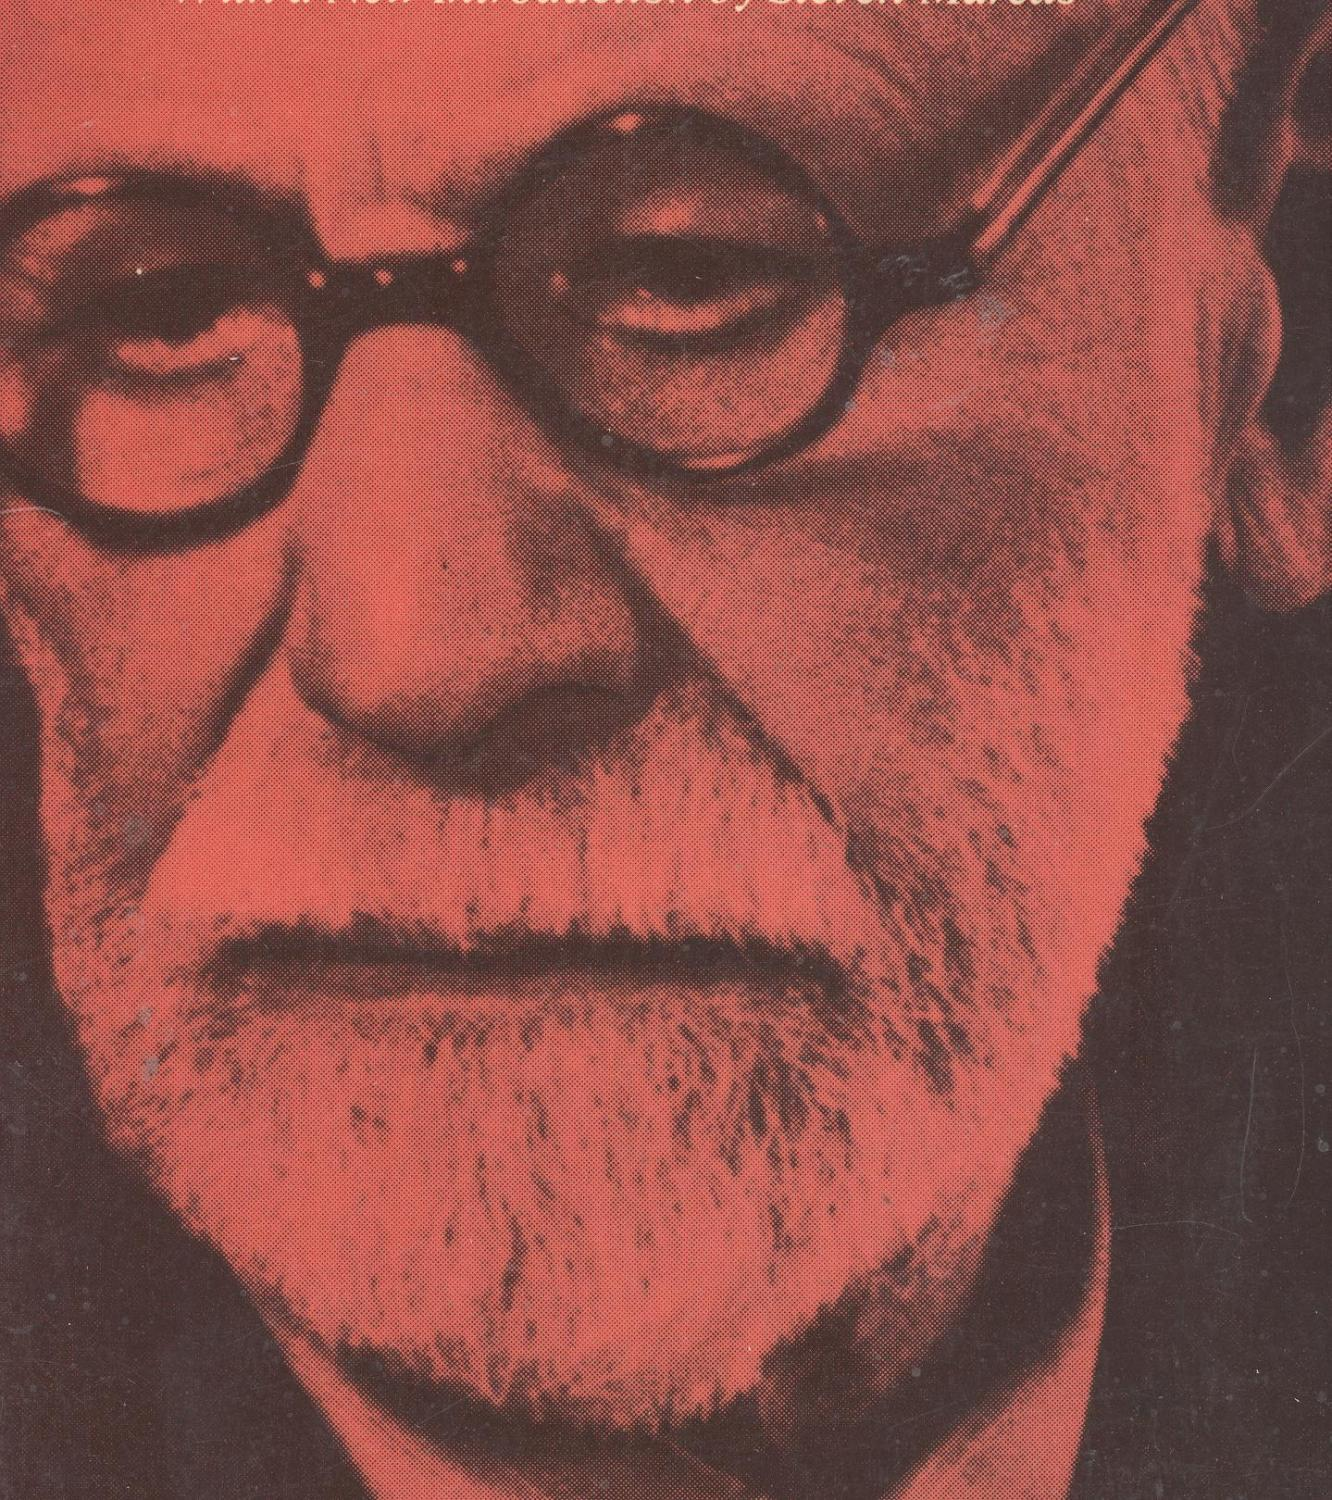 Three essays on the theory of sexuality : The sexual aberrations -- Infantile sexuality -- The transformations of puberty. [Drei Abhandlungen zur Sexualtheorie. English] - Freud, Sigmund, 1856-1939. ; Strachey, James. ; Steven Marcus